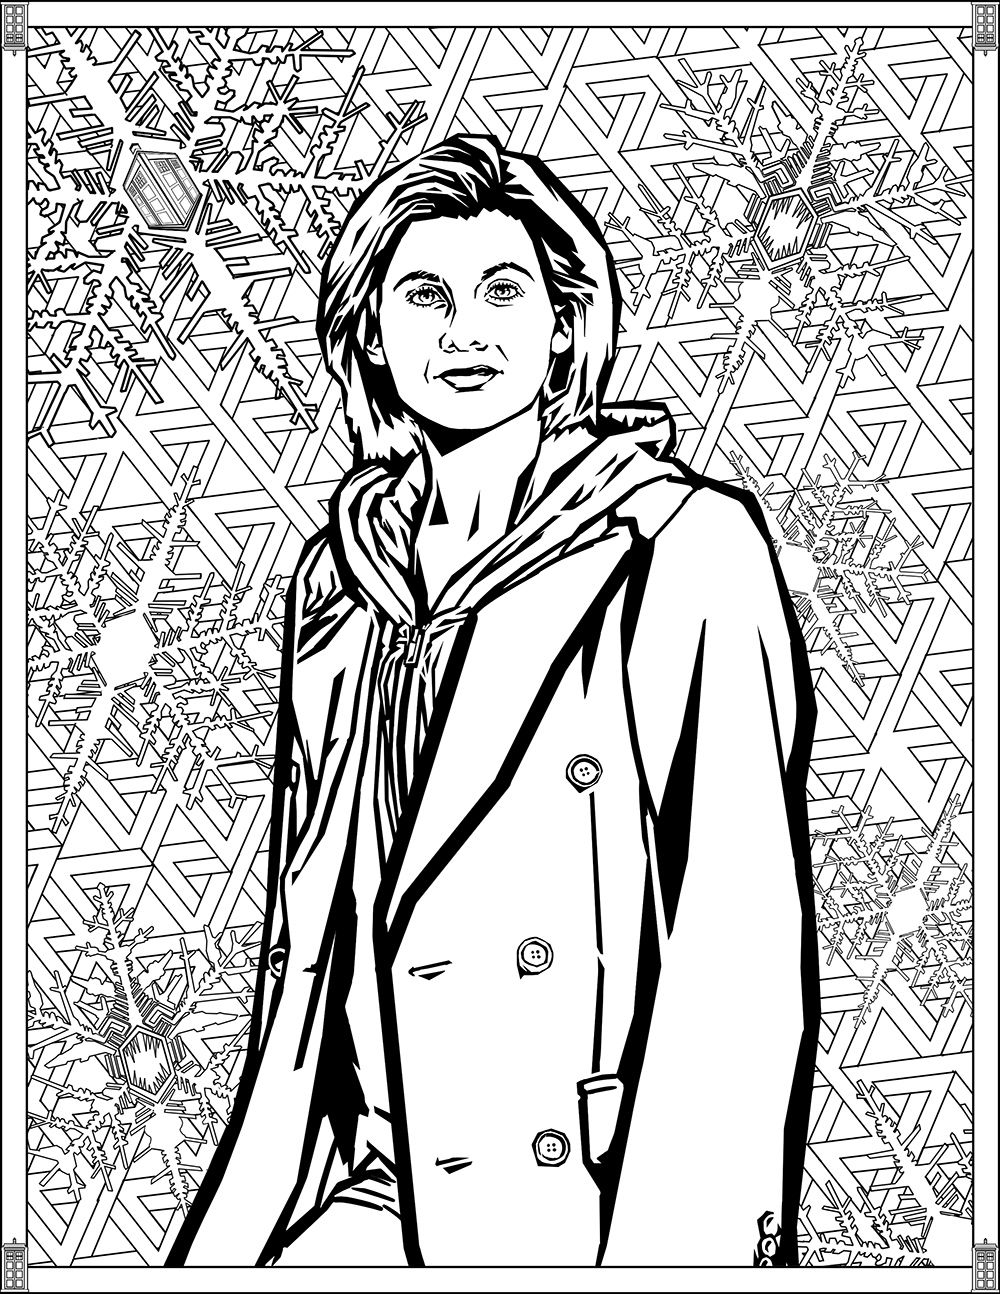 Doctor Who Wibbly Wobbly Timey Wimey Coloring Pages Printables